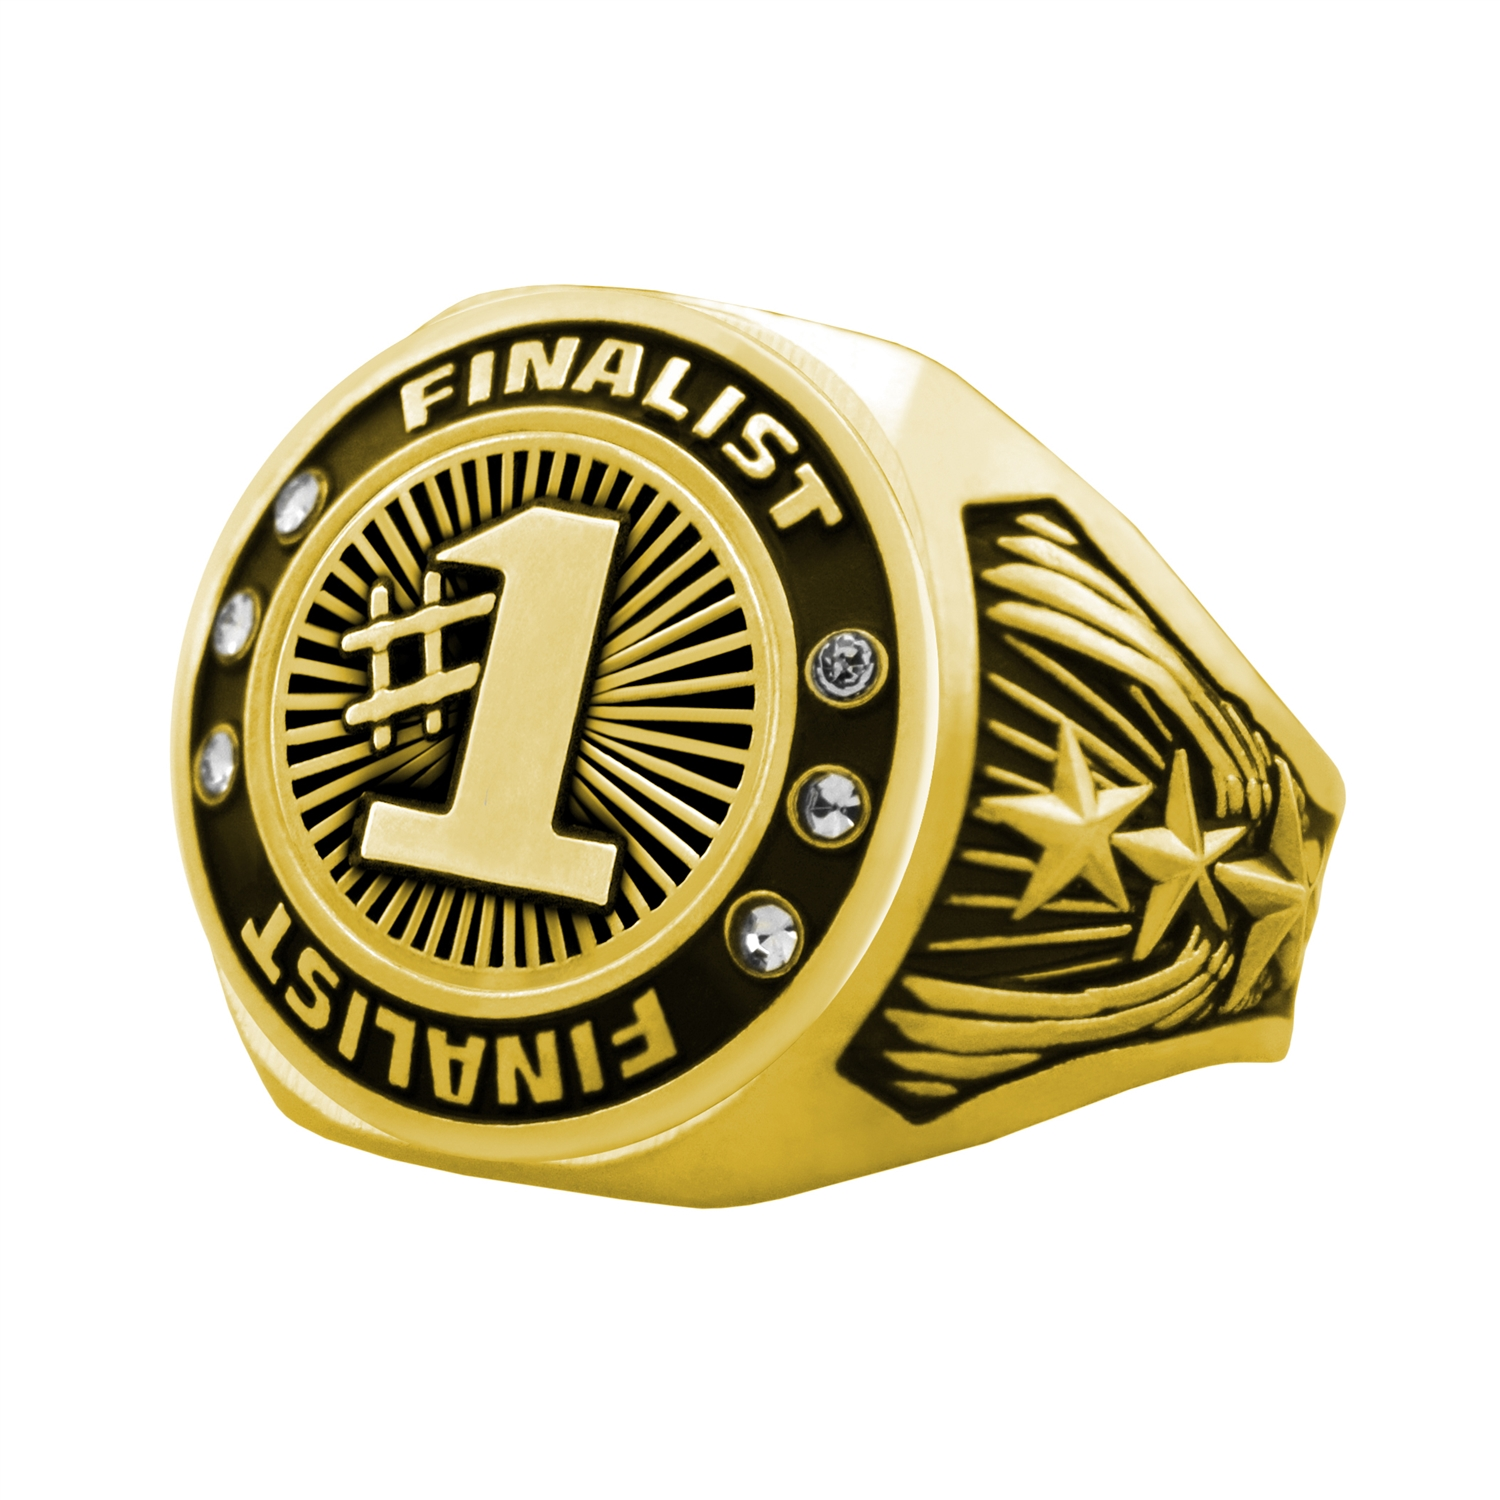 Finalist Number 1 Ring